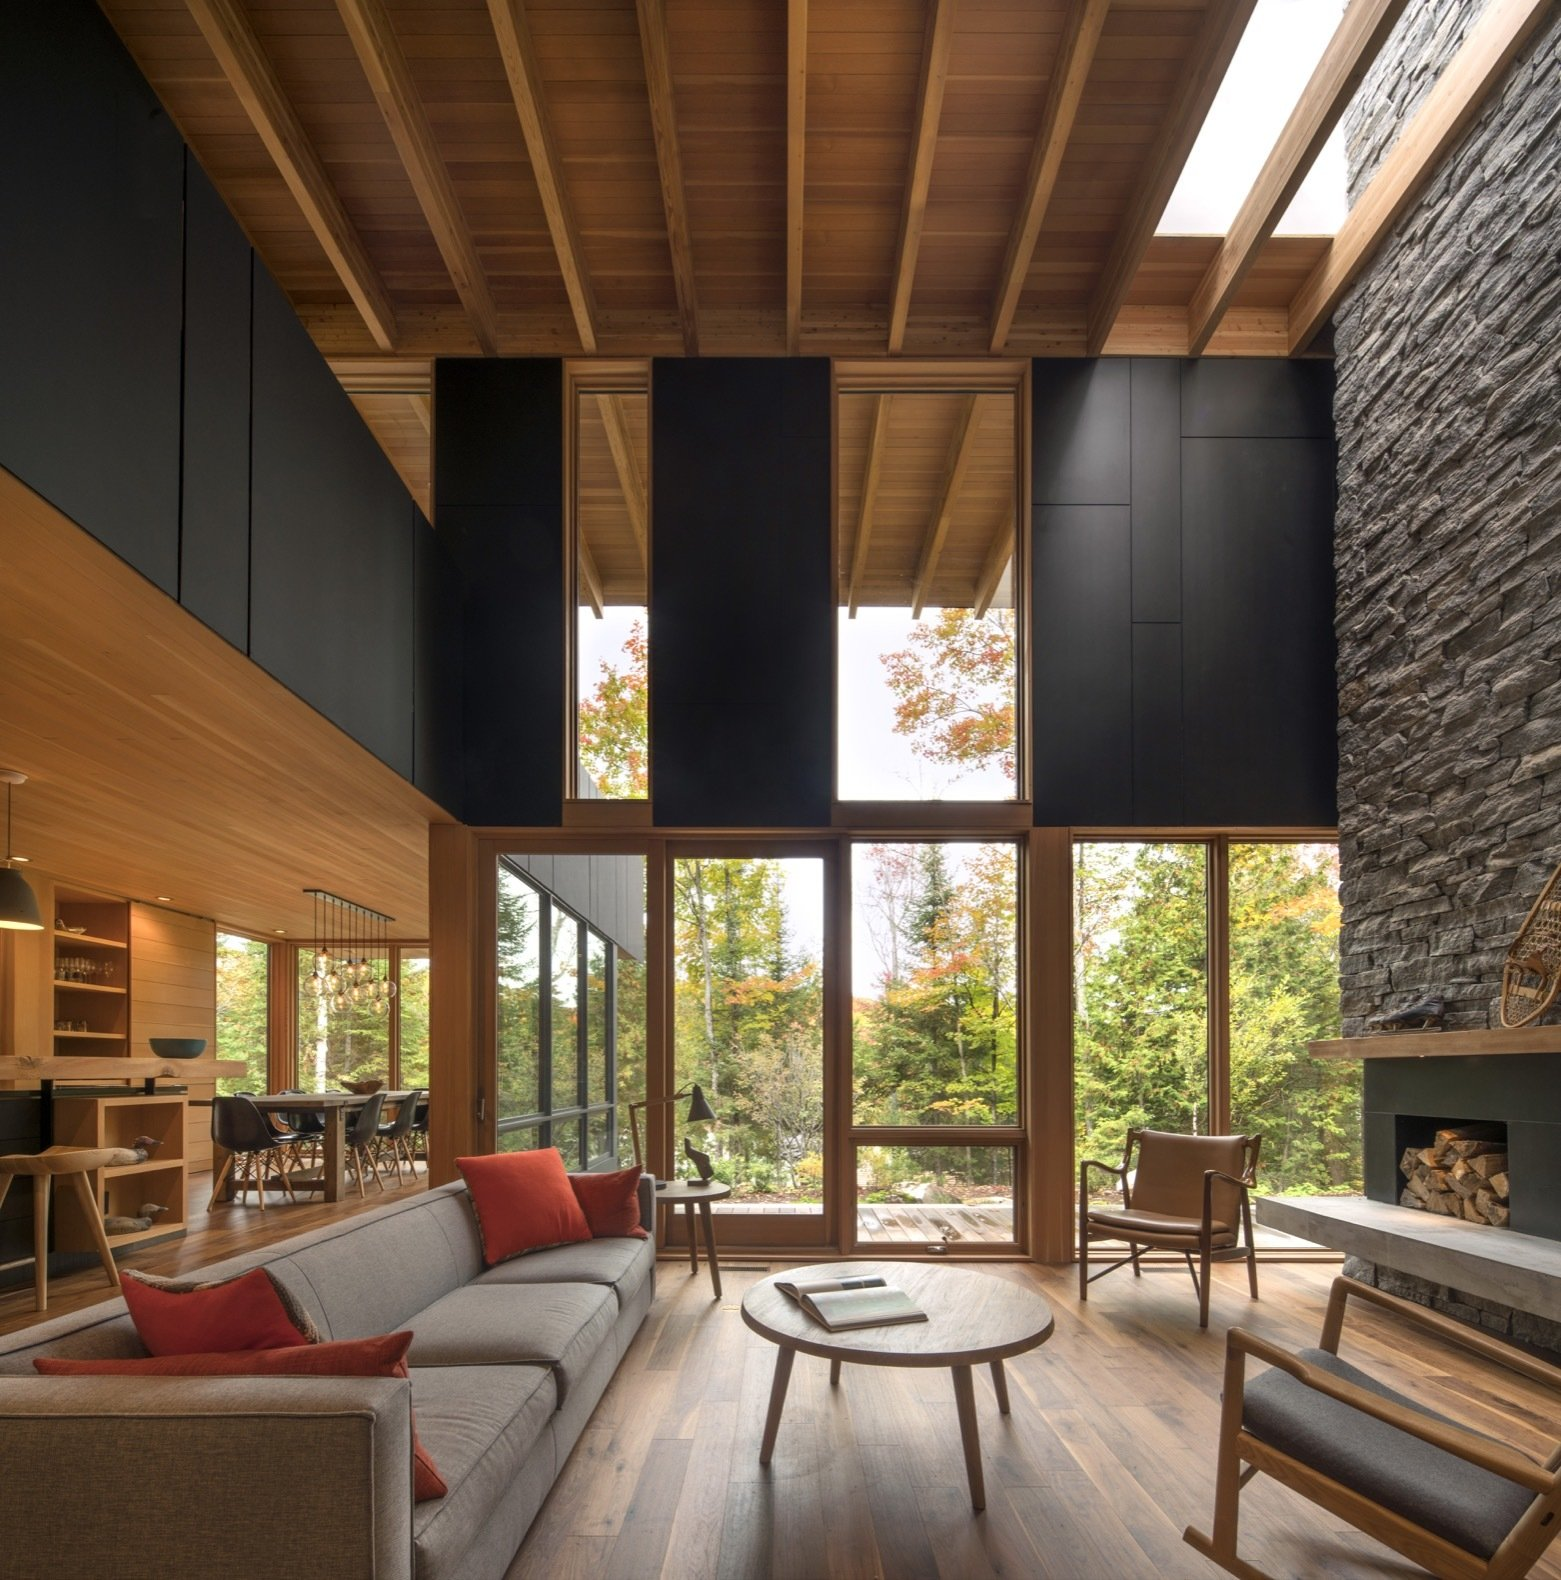 Bear Stand Residence living room with fireplace